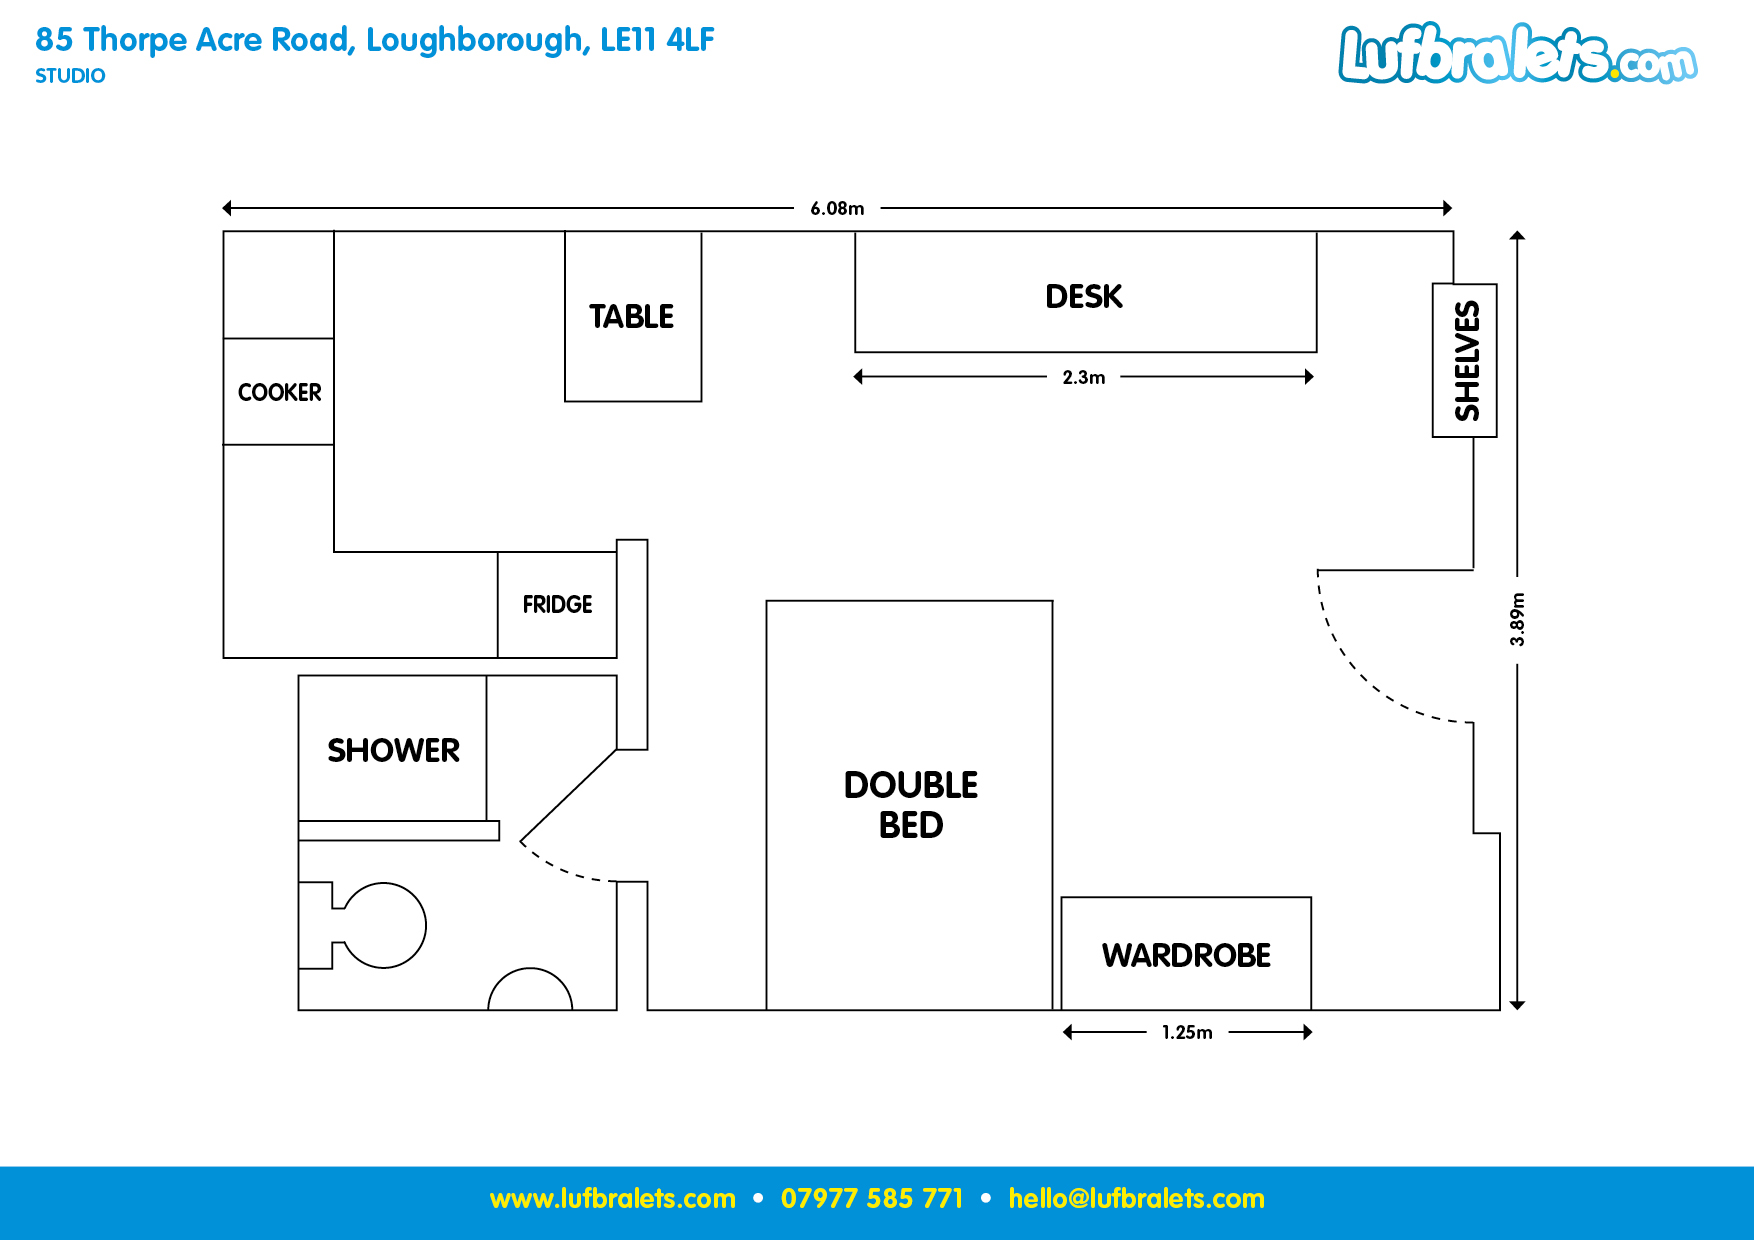 Studio Apartment in Loughborough